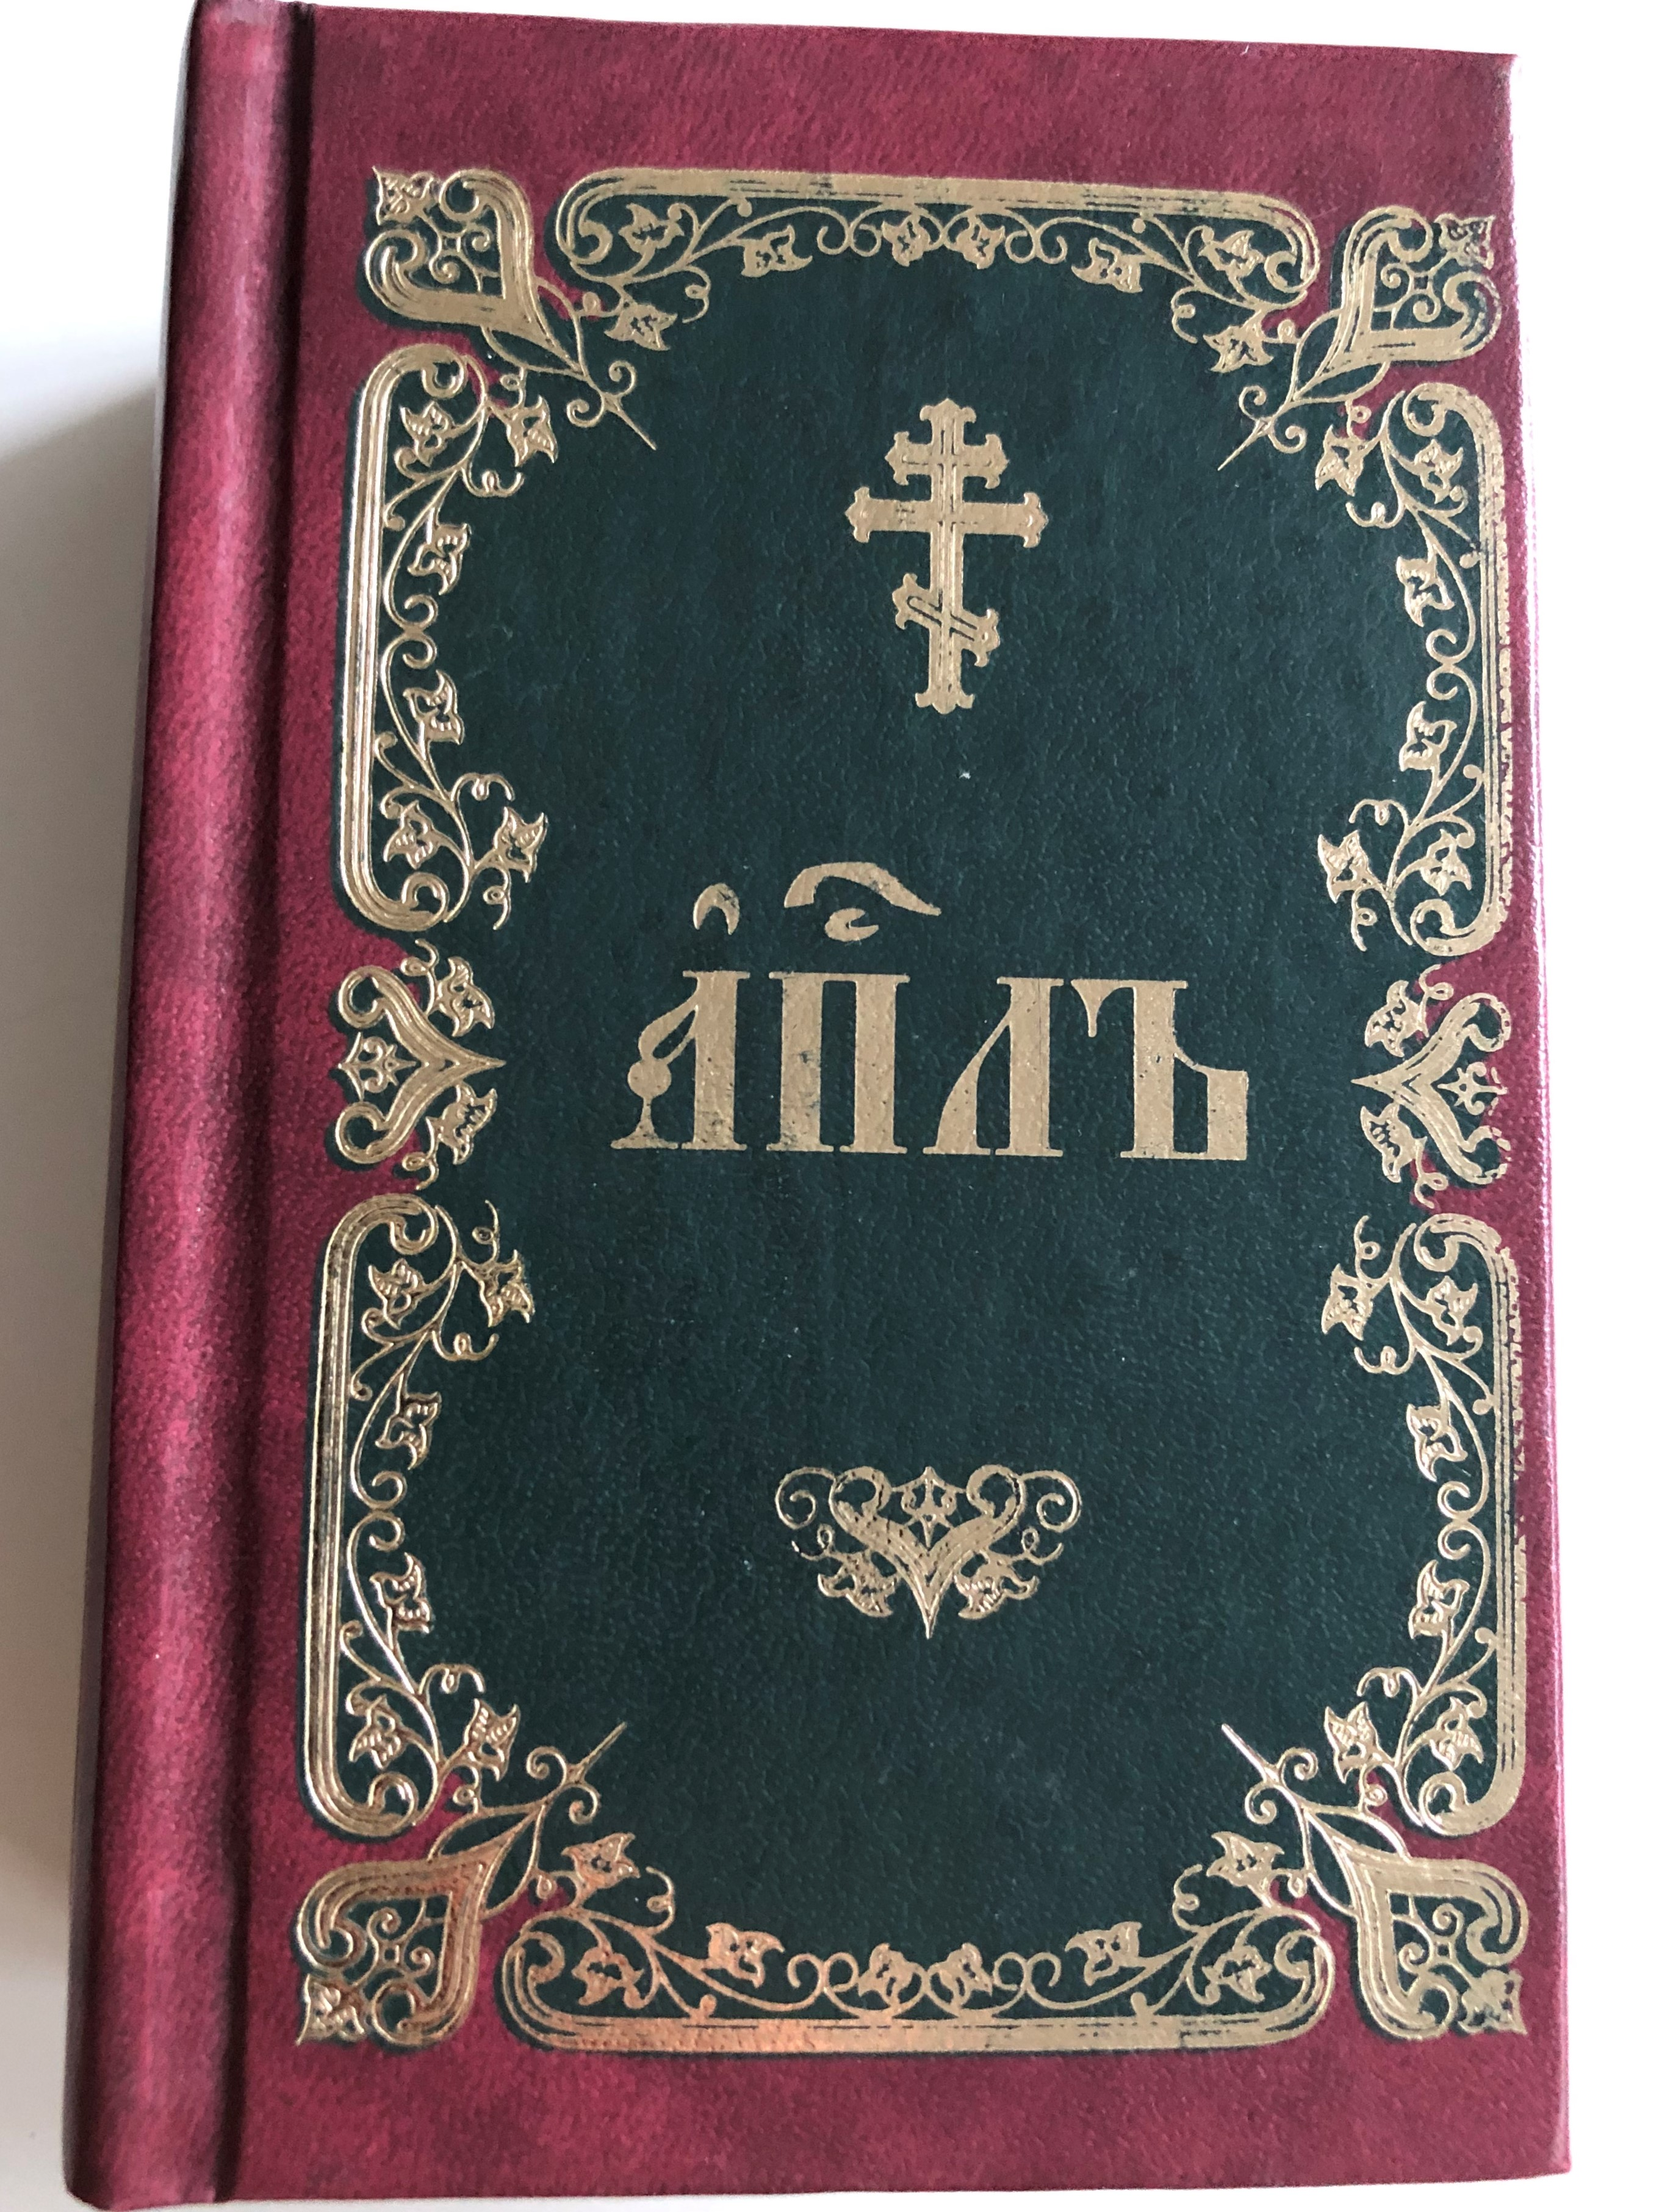 russian-language-book-of-acts-epistles-and-revelation-to-john-recommended-by-the-russian-orthodox-church-hardcover-c-2011-1-.jpg